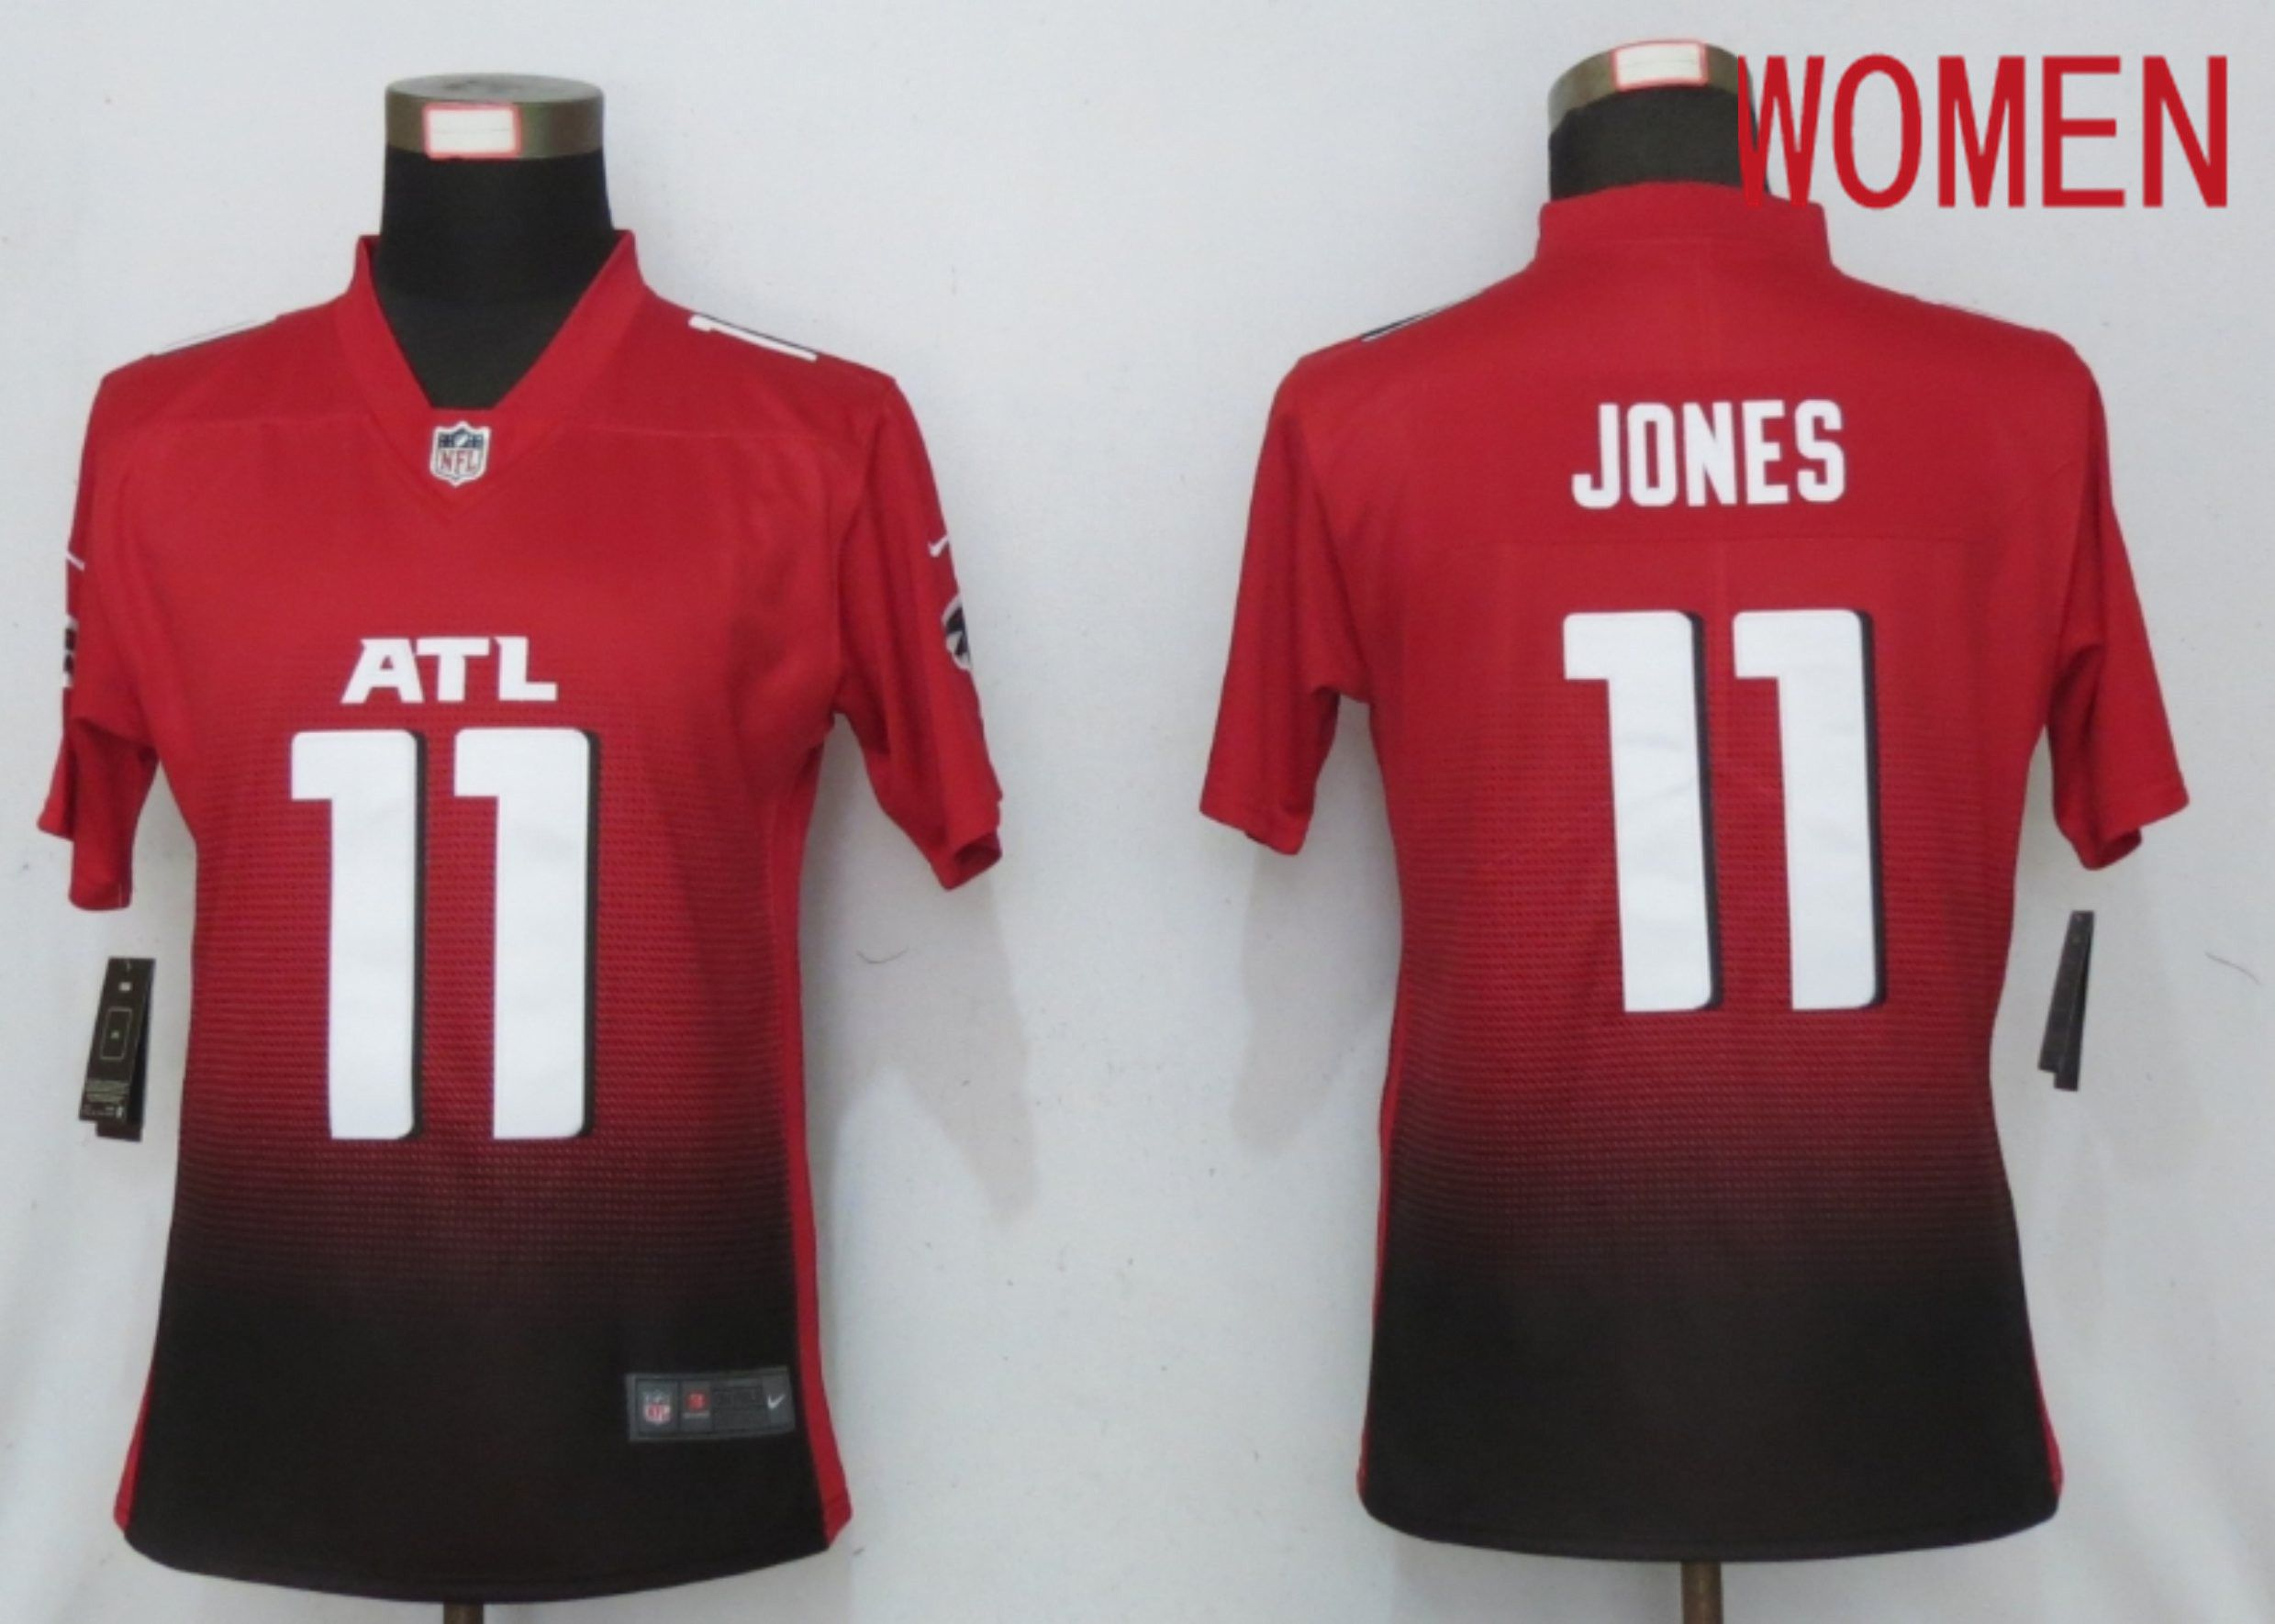 Cheap Women Atlanta Falcons 11 Jones Red 2nd Alternate Elite Playe Nike NFL Jersey